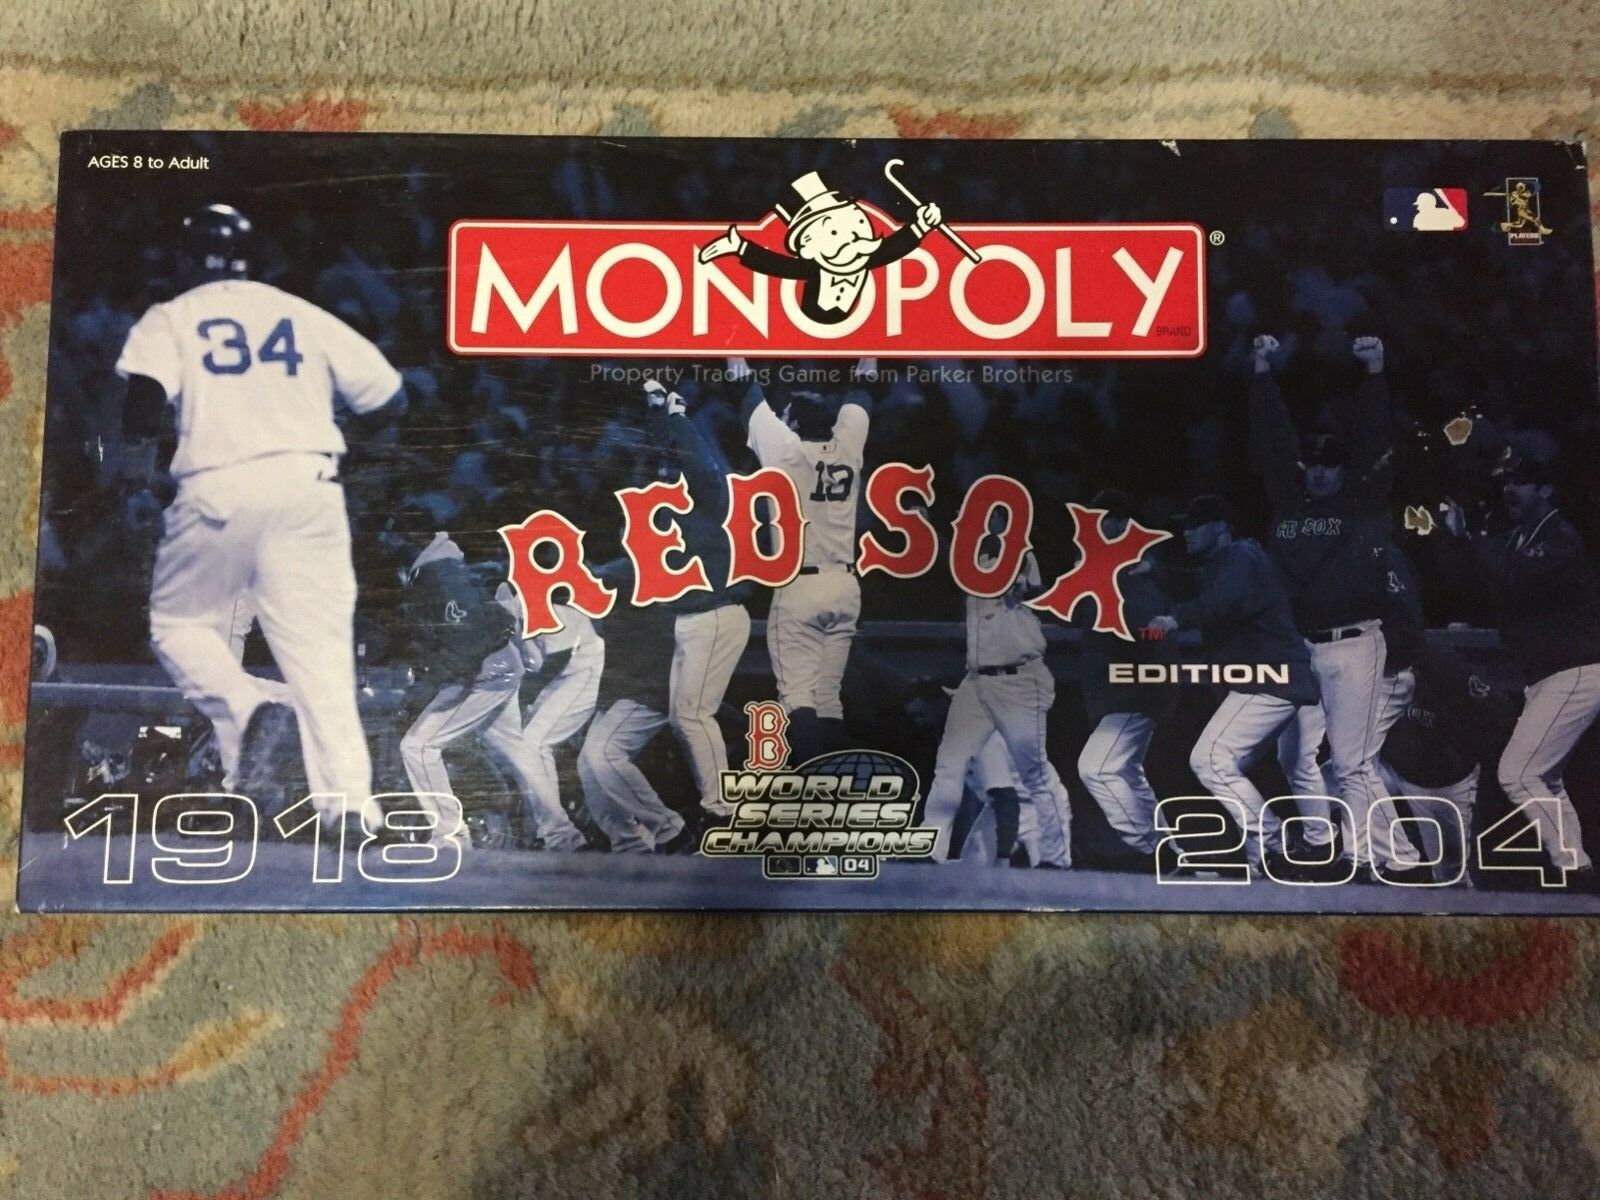 Game Monopoly Boston Red Sox World Champs 2004 Parker Bredhers